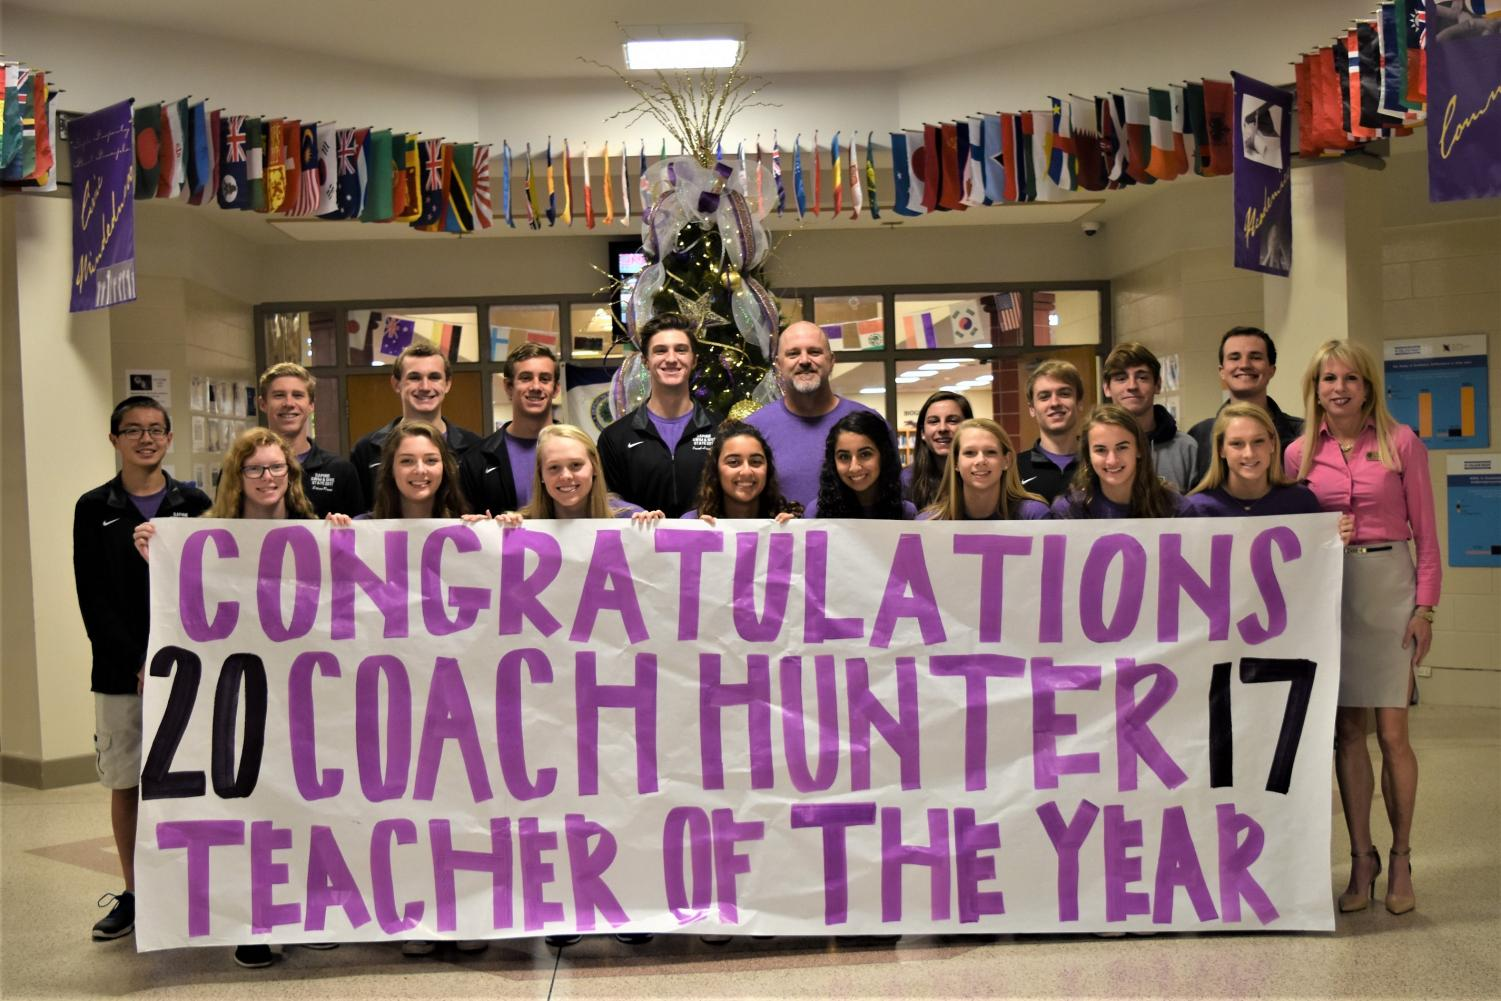 Bryan Hunter is DHS Teacher of the Year 2018. He teaches math and coaches swim & dive and golf.